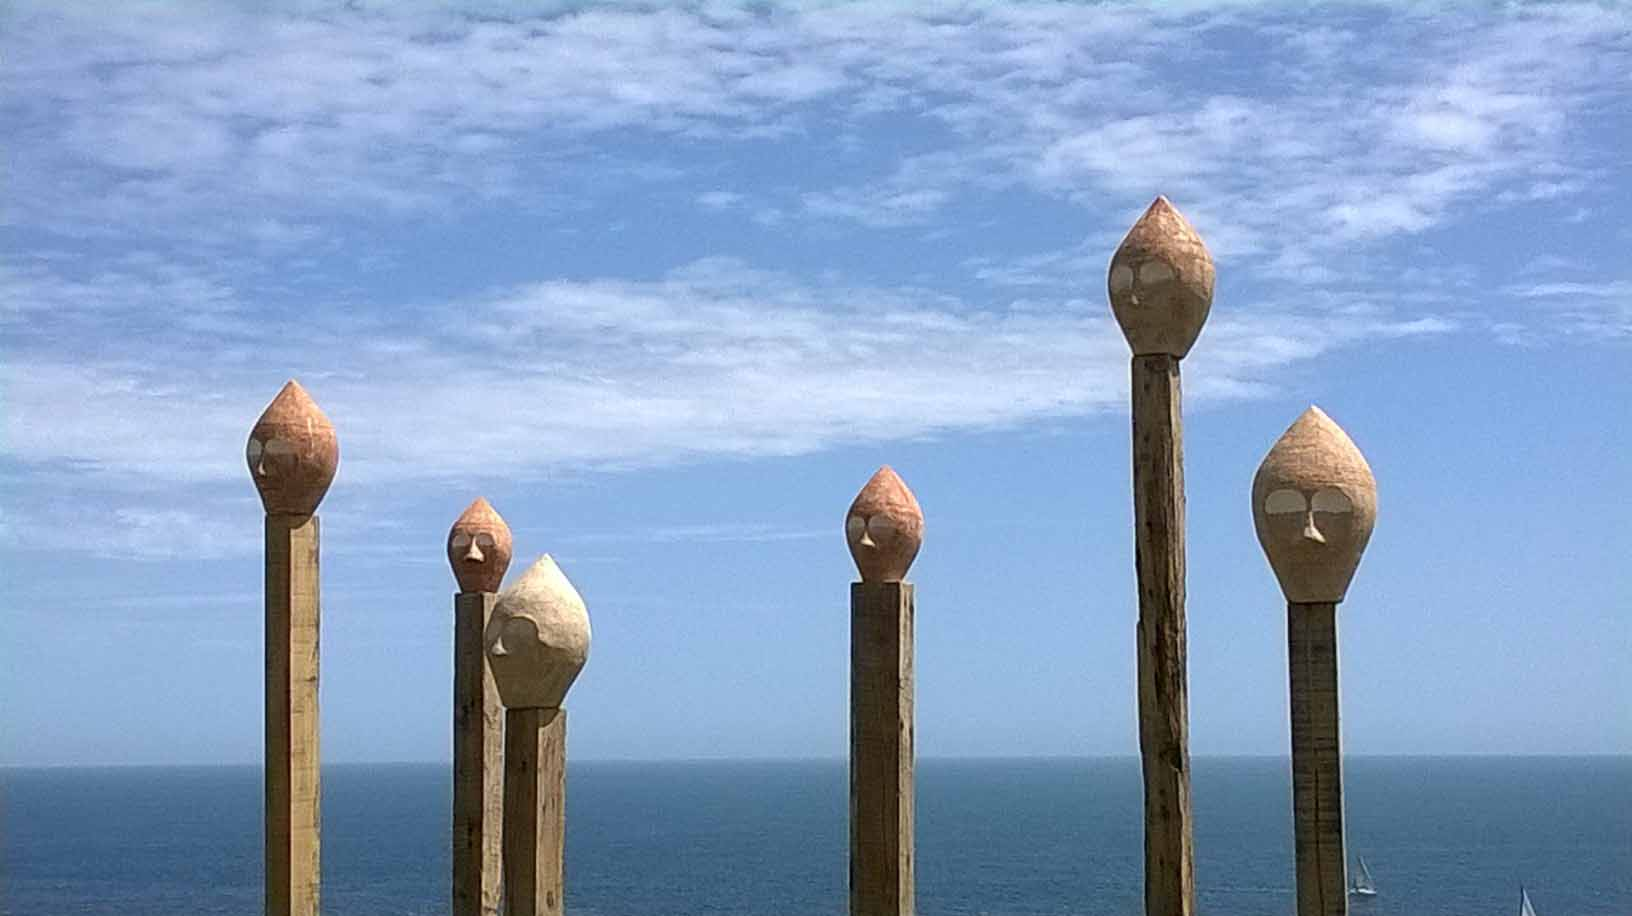 'On The Edge' ceramic, installation at Durlston Castle. Danish longships were wrecked in a storm in Swanage Bay…